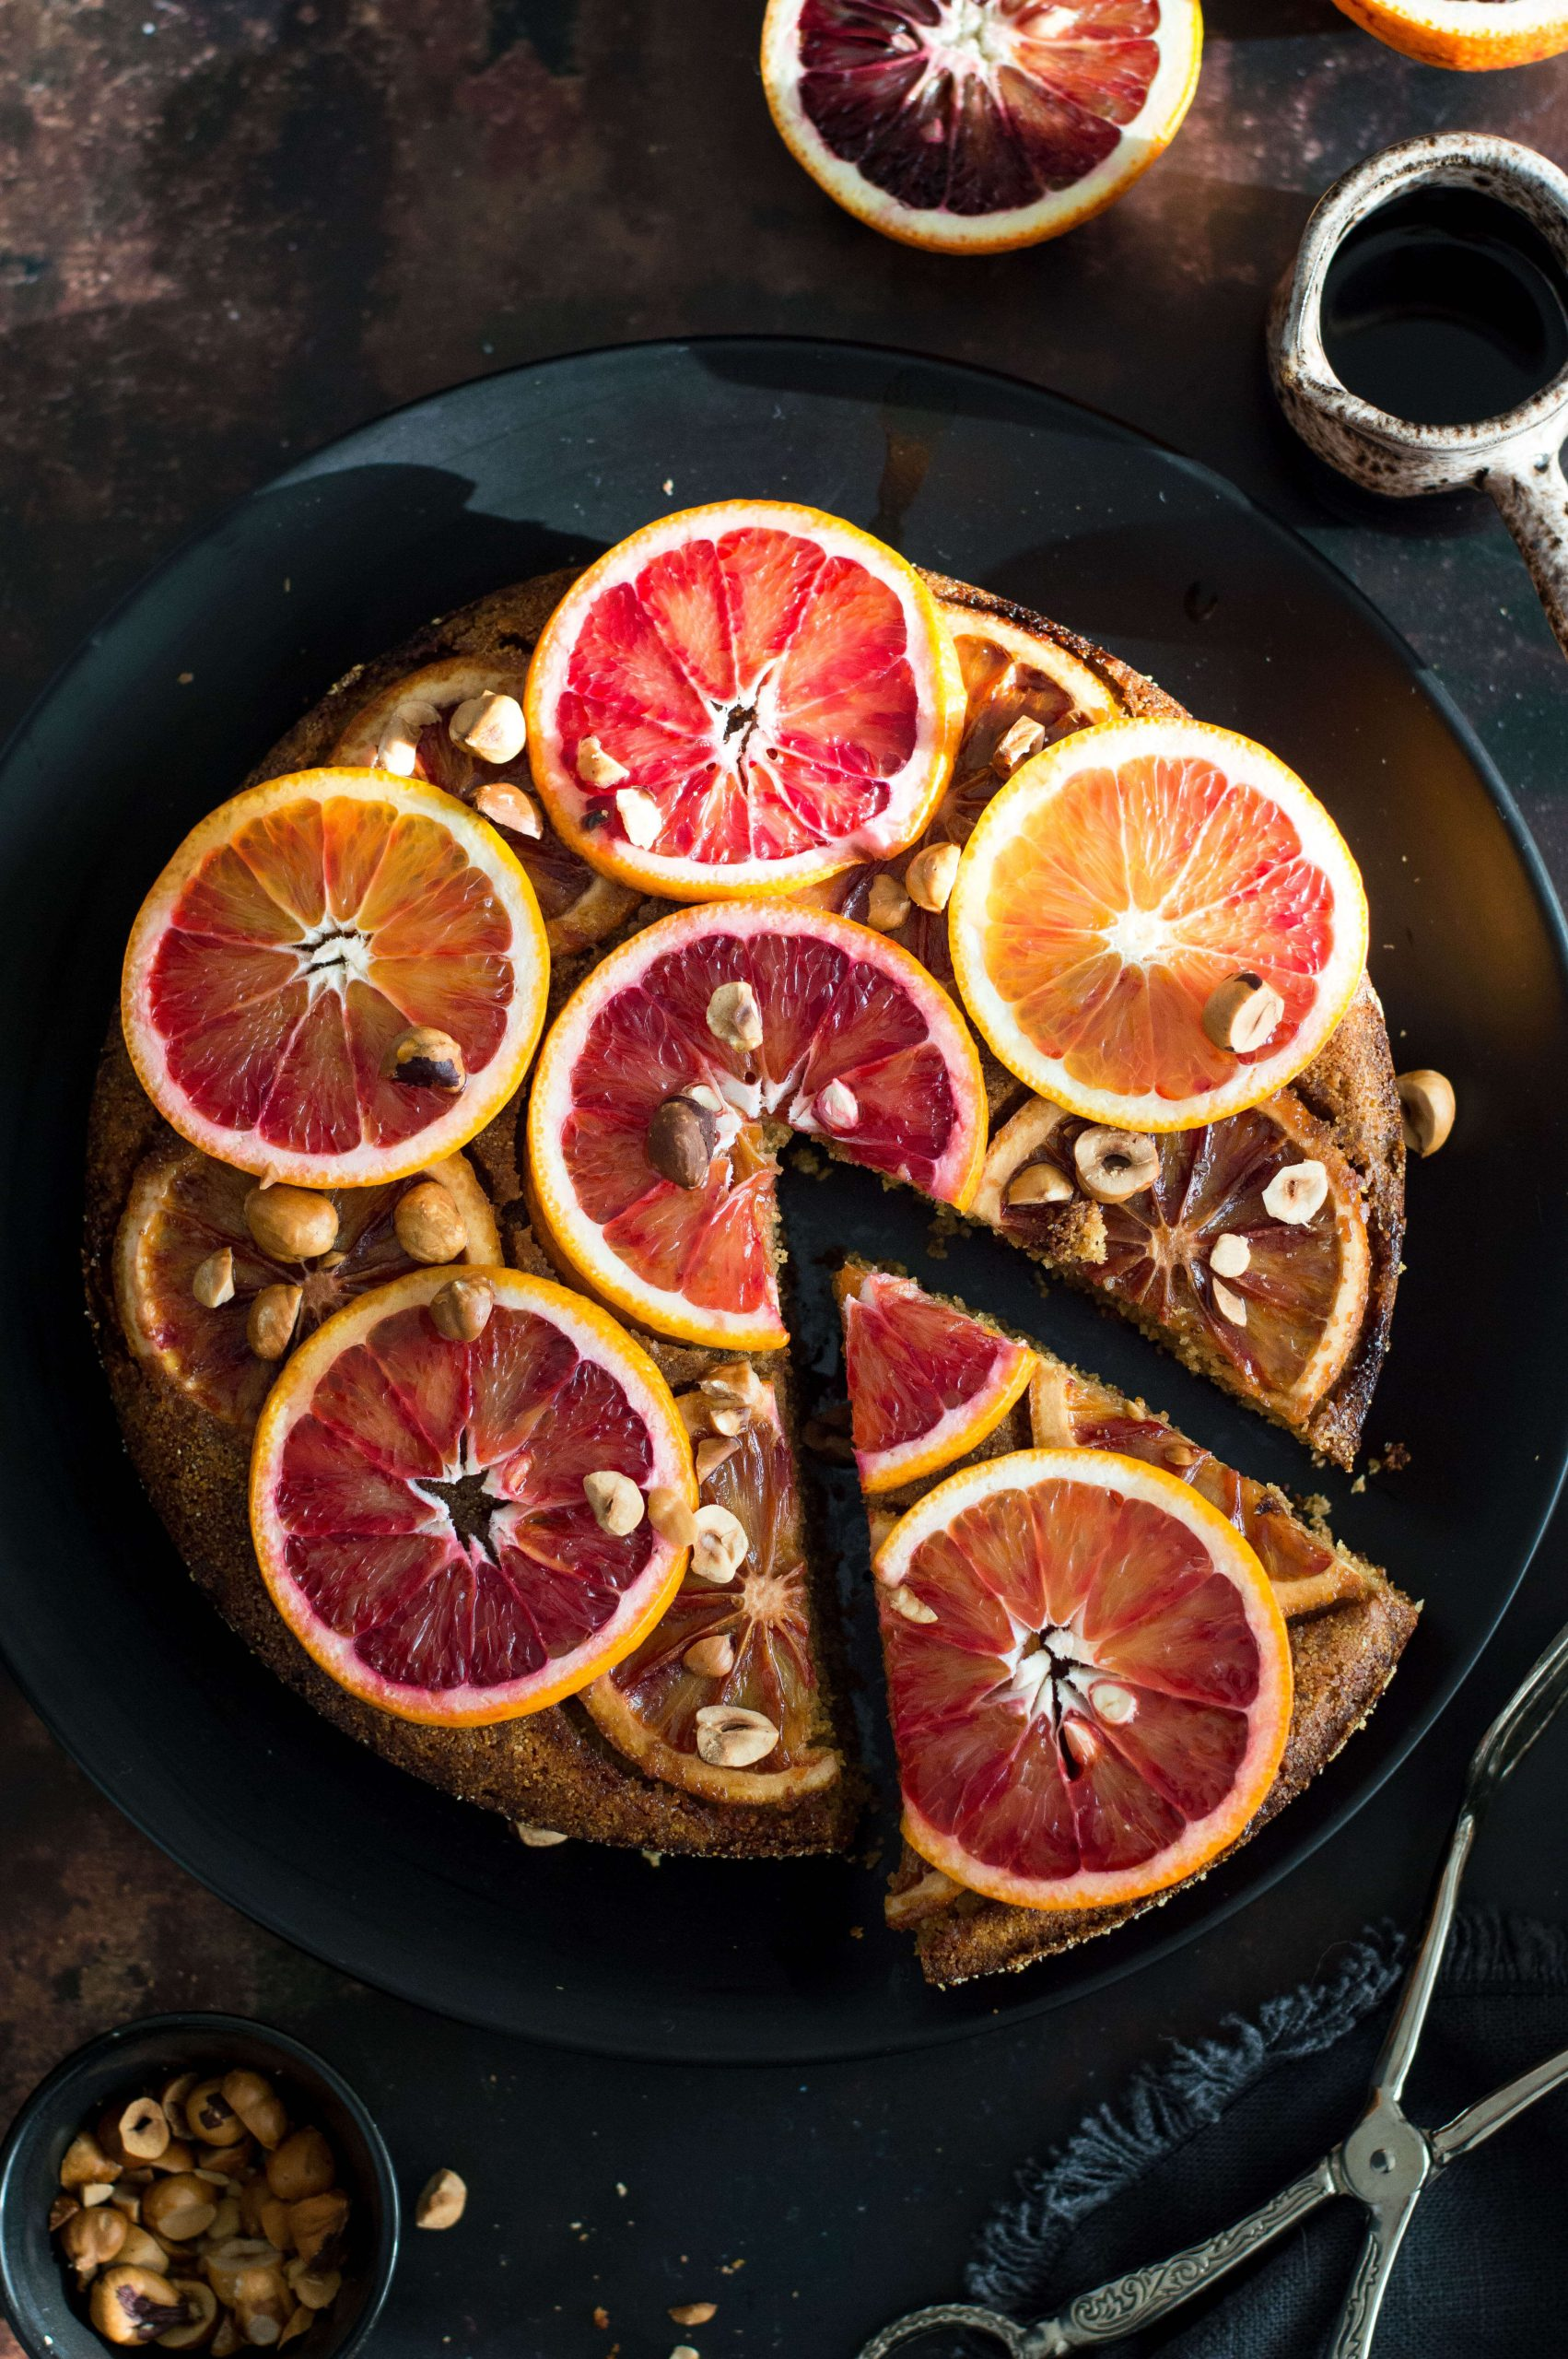 Top down view of upside down blood orange cake on a black plate